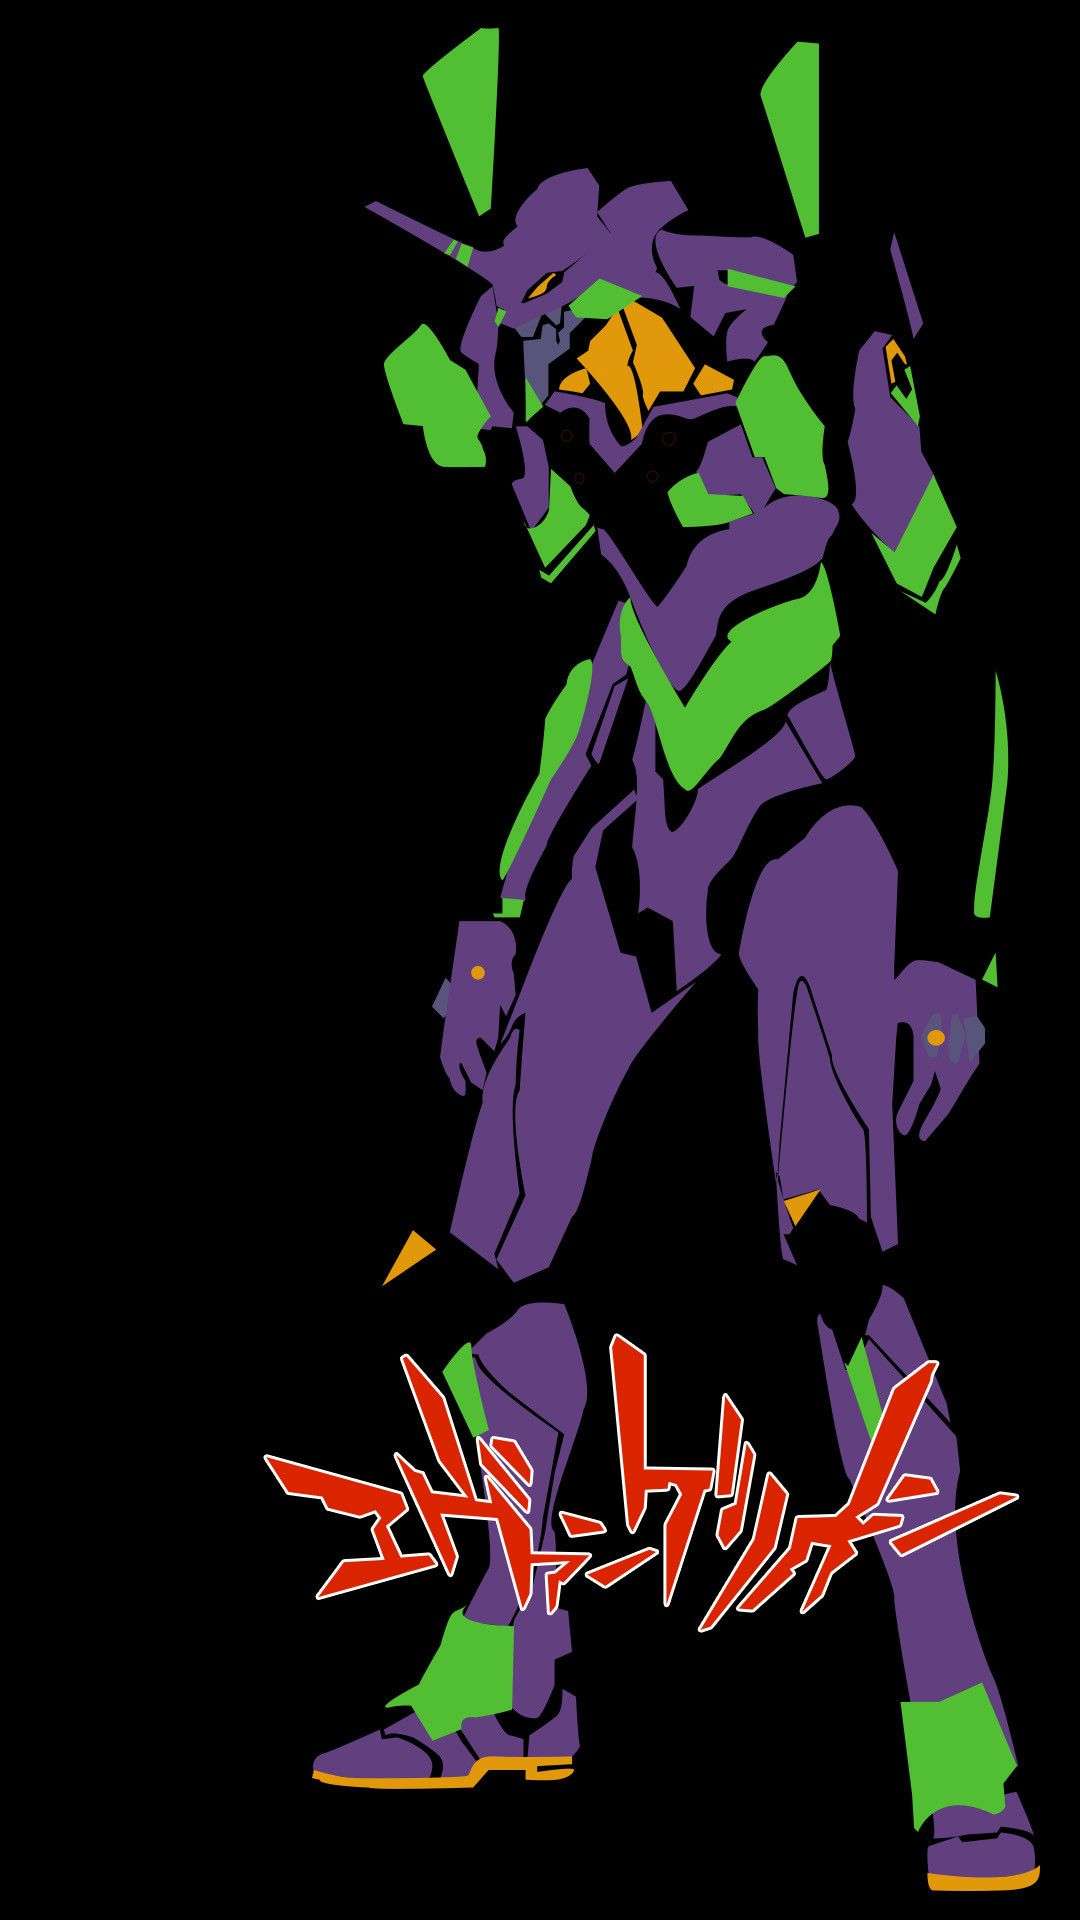 Evangelion Phone Wallpapers Top Free Evangelion Phone Backgrounds Wallpaperaccess